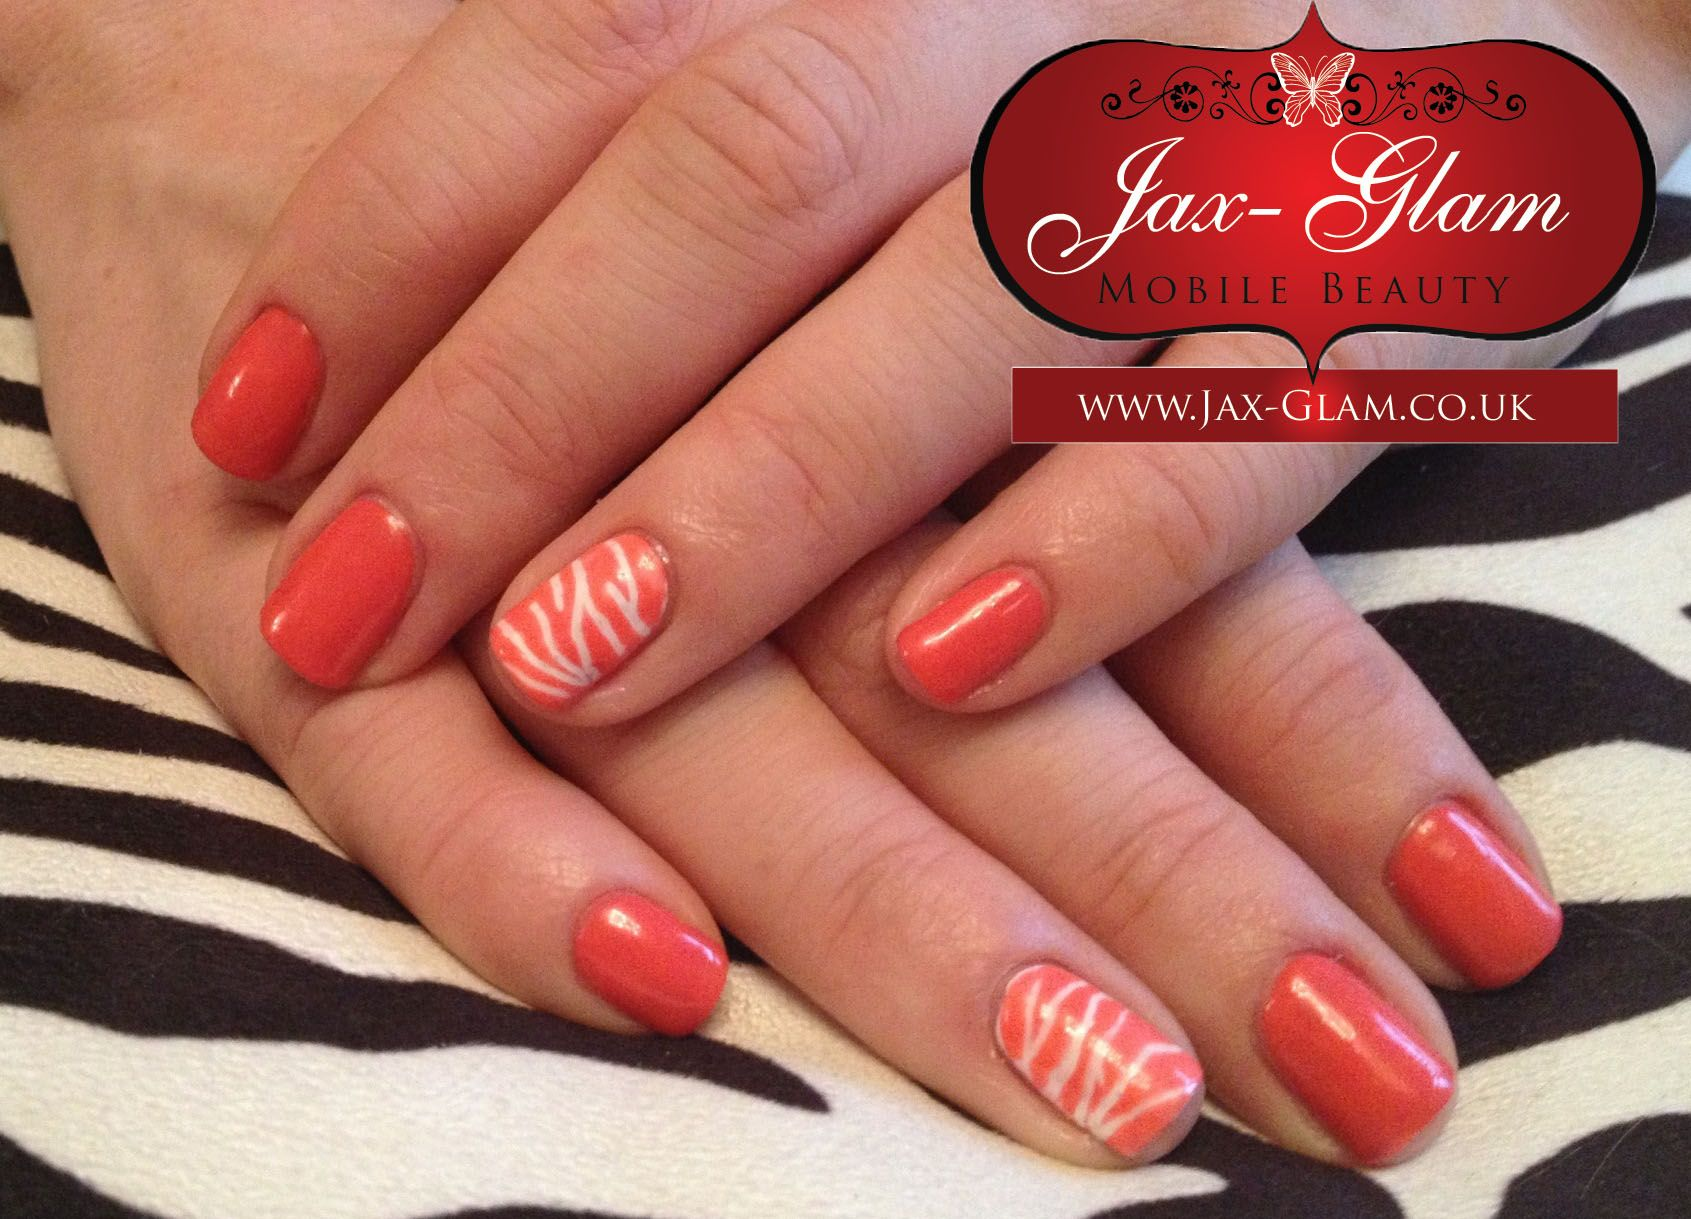 Cnd Shellac Tropix With Zebra Feature Finger By Jax Glam Mobile Beauty Bristol Wedding Makeup